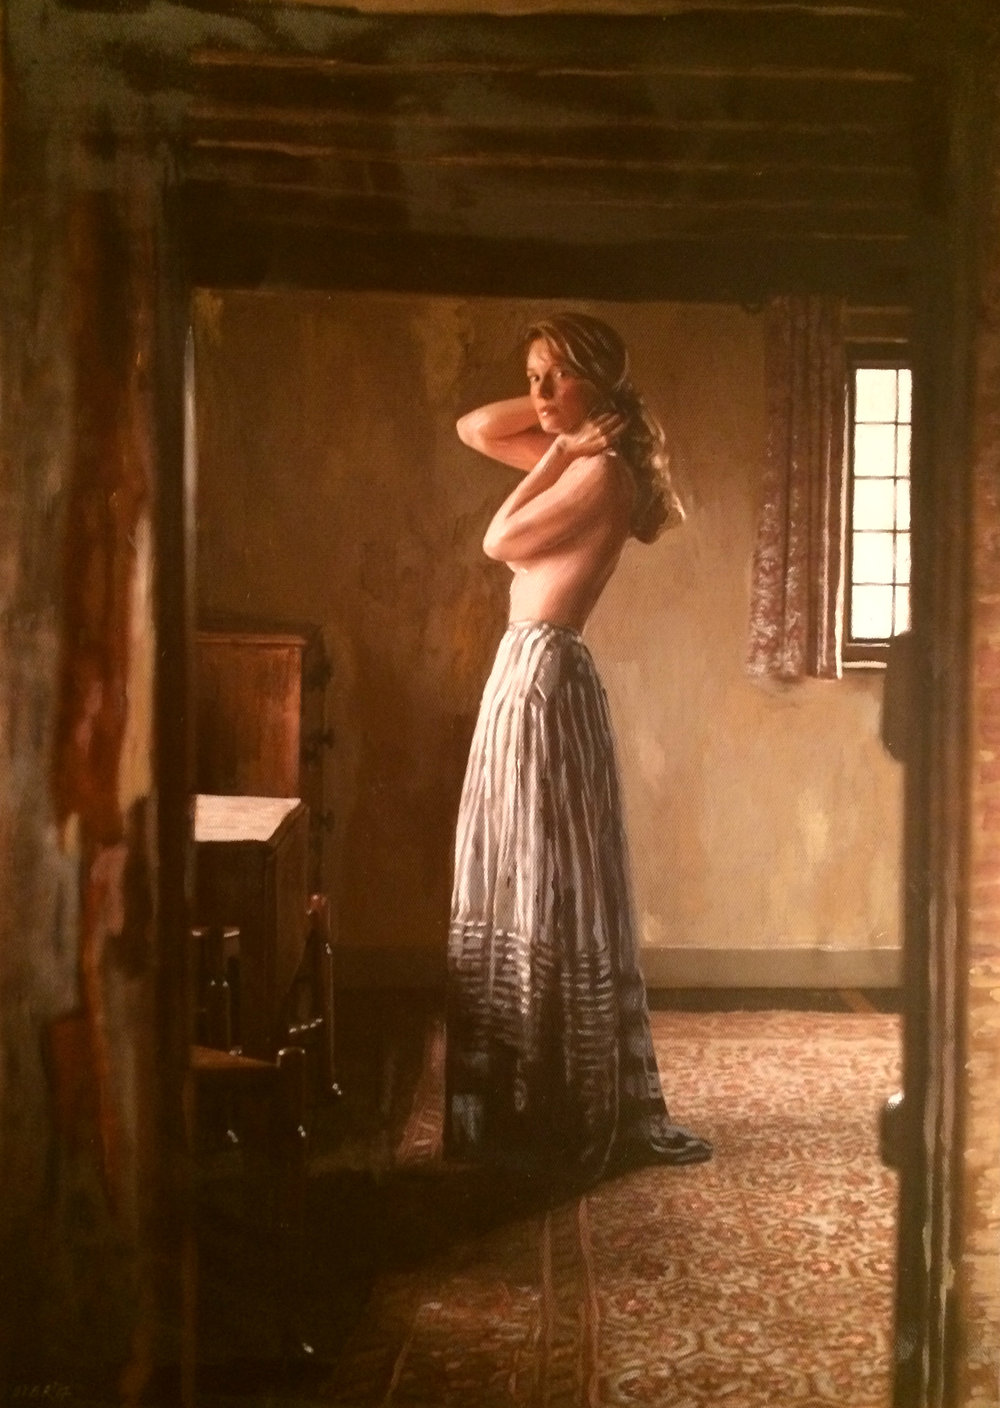 By William Oxer